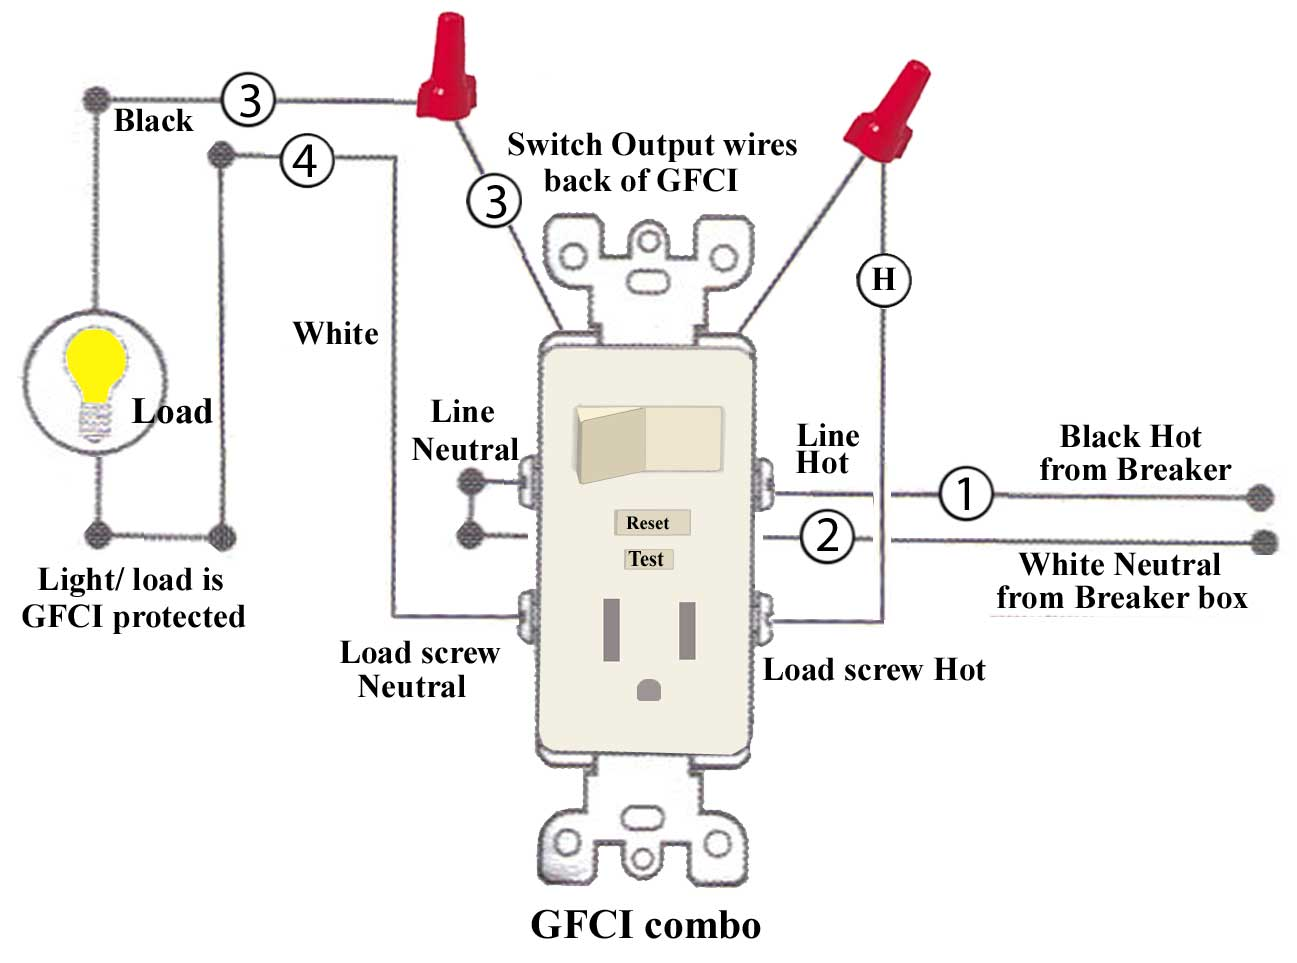 GFCI combo wiring update how to install and troubleshoot gfci combination switch and outlet wiring diagram at creativeand.co